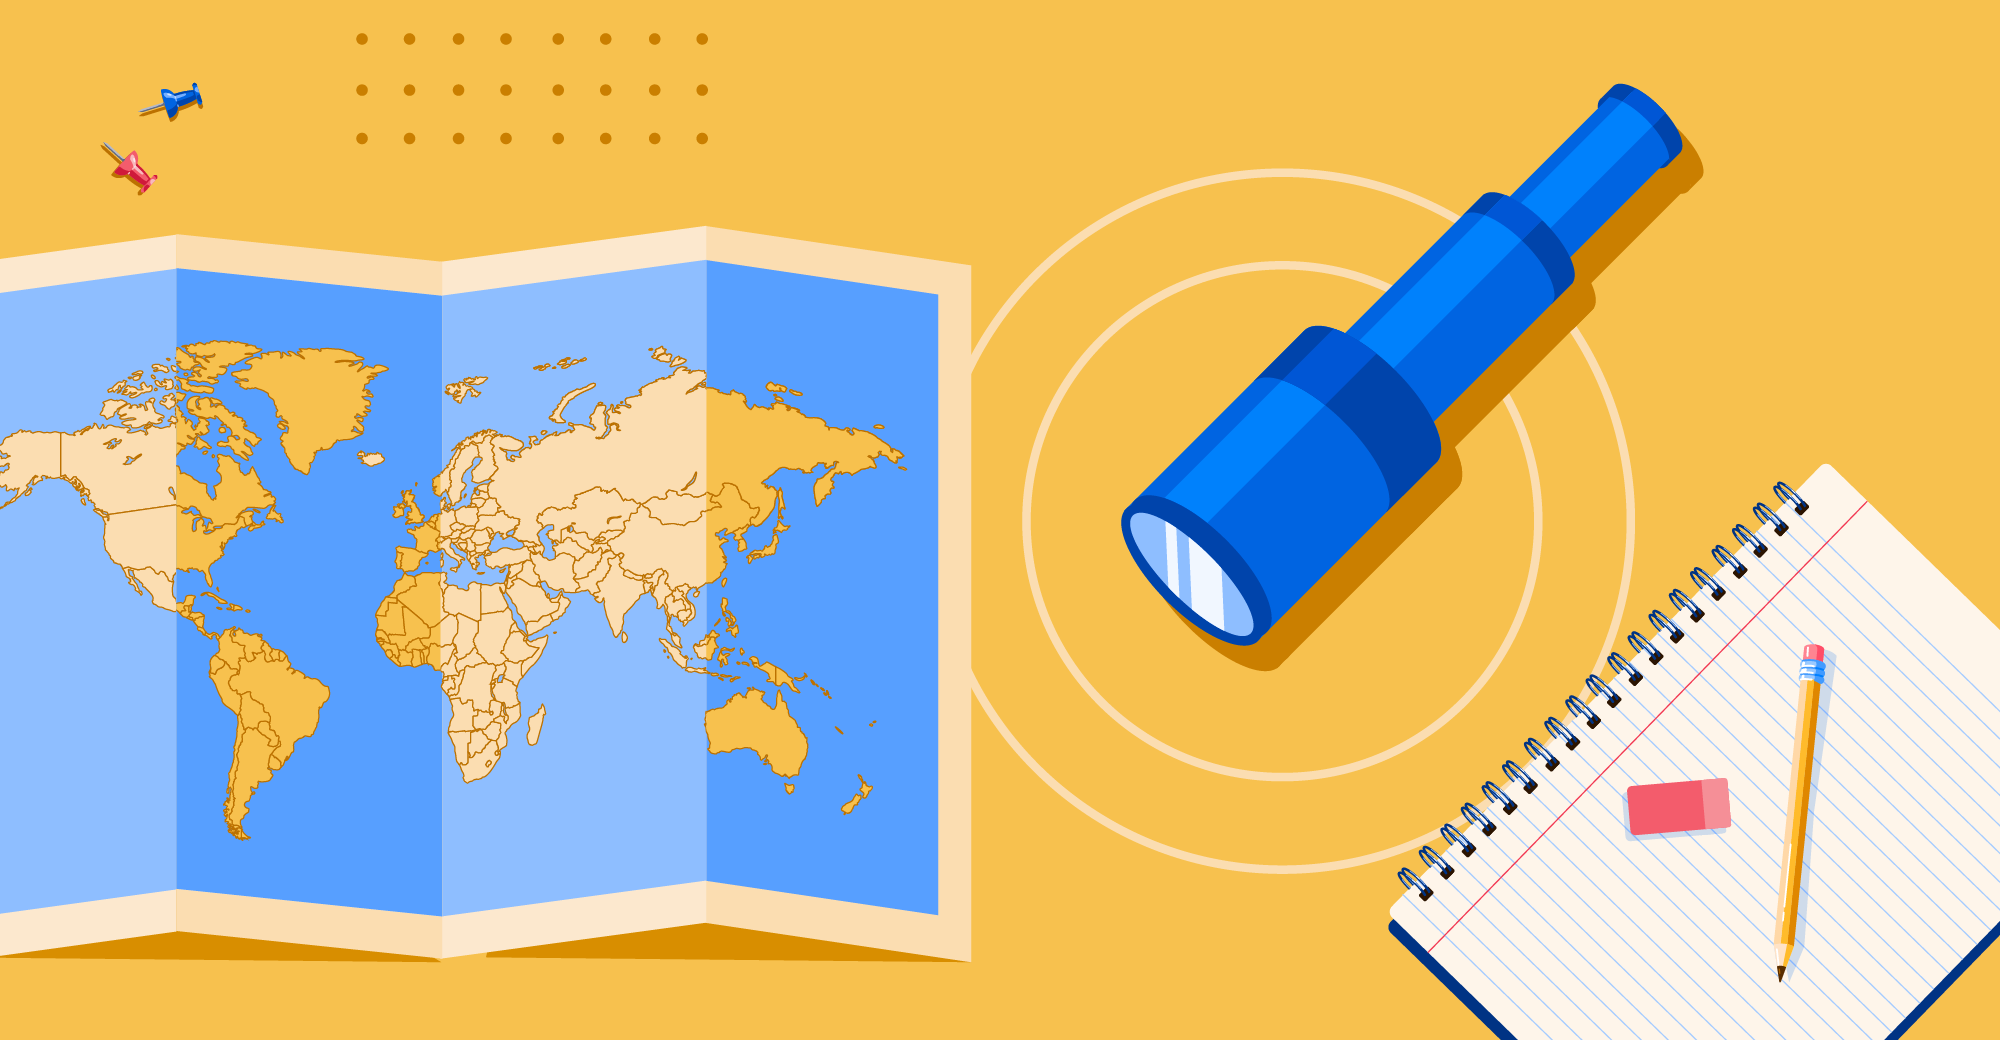 A map of the world, a telescope, and some school supplies